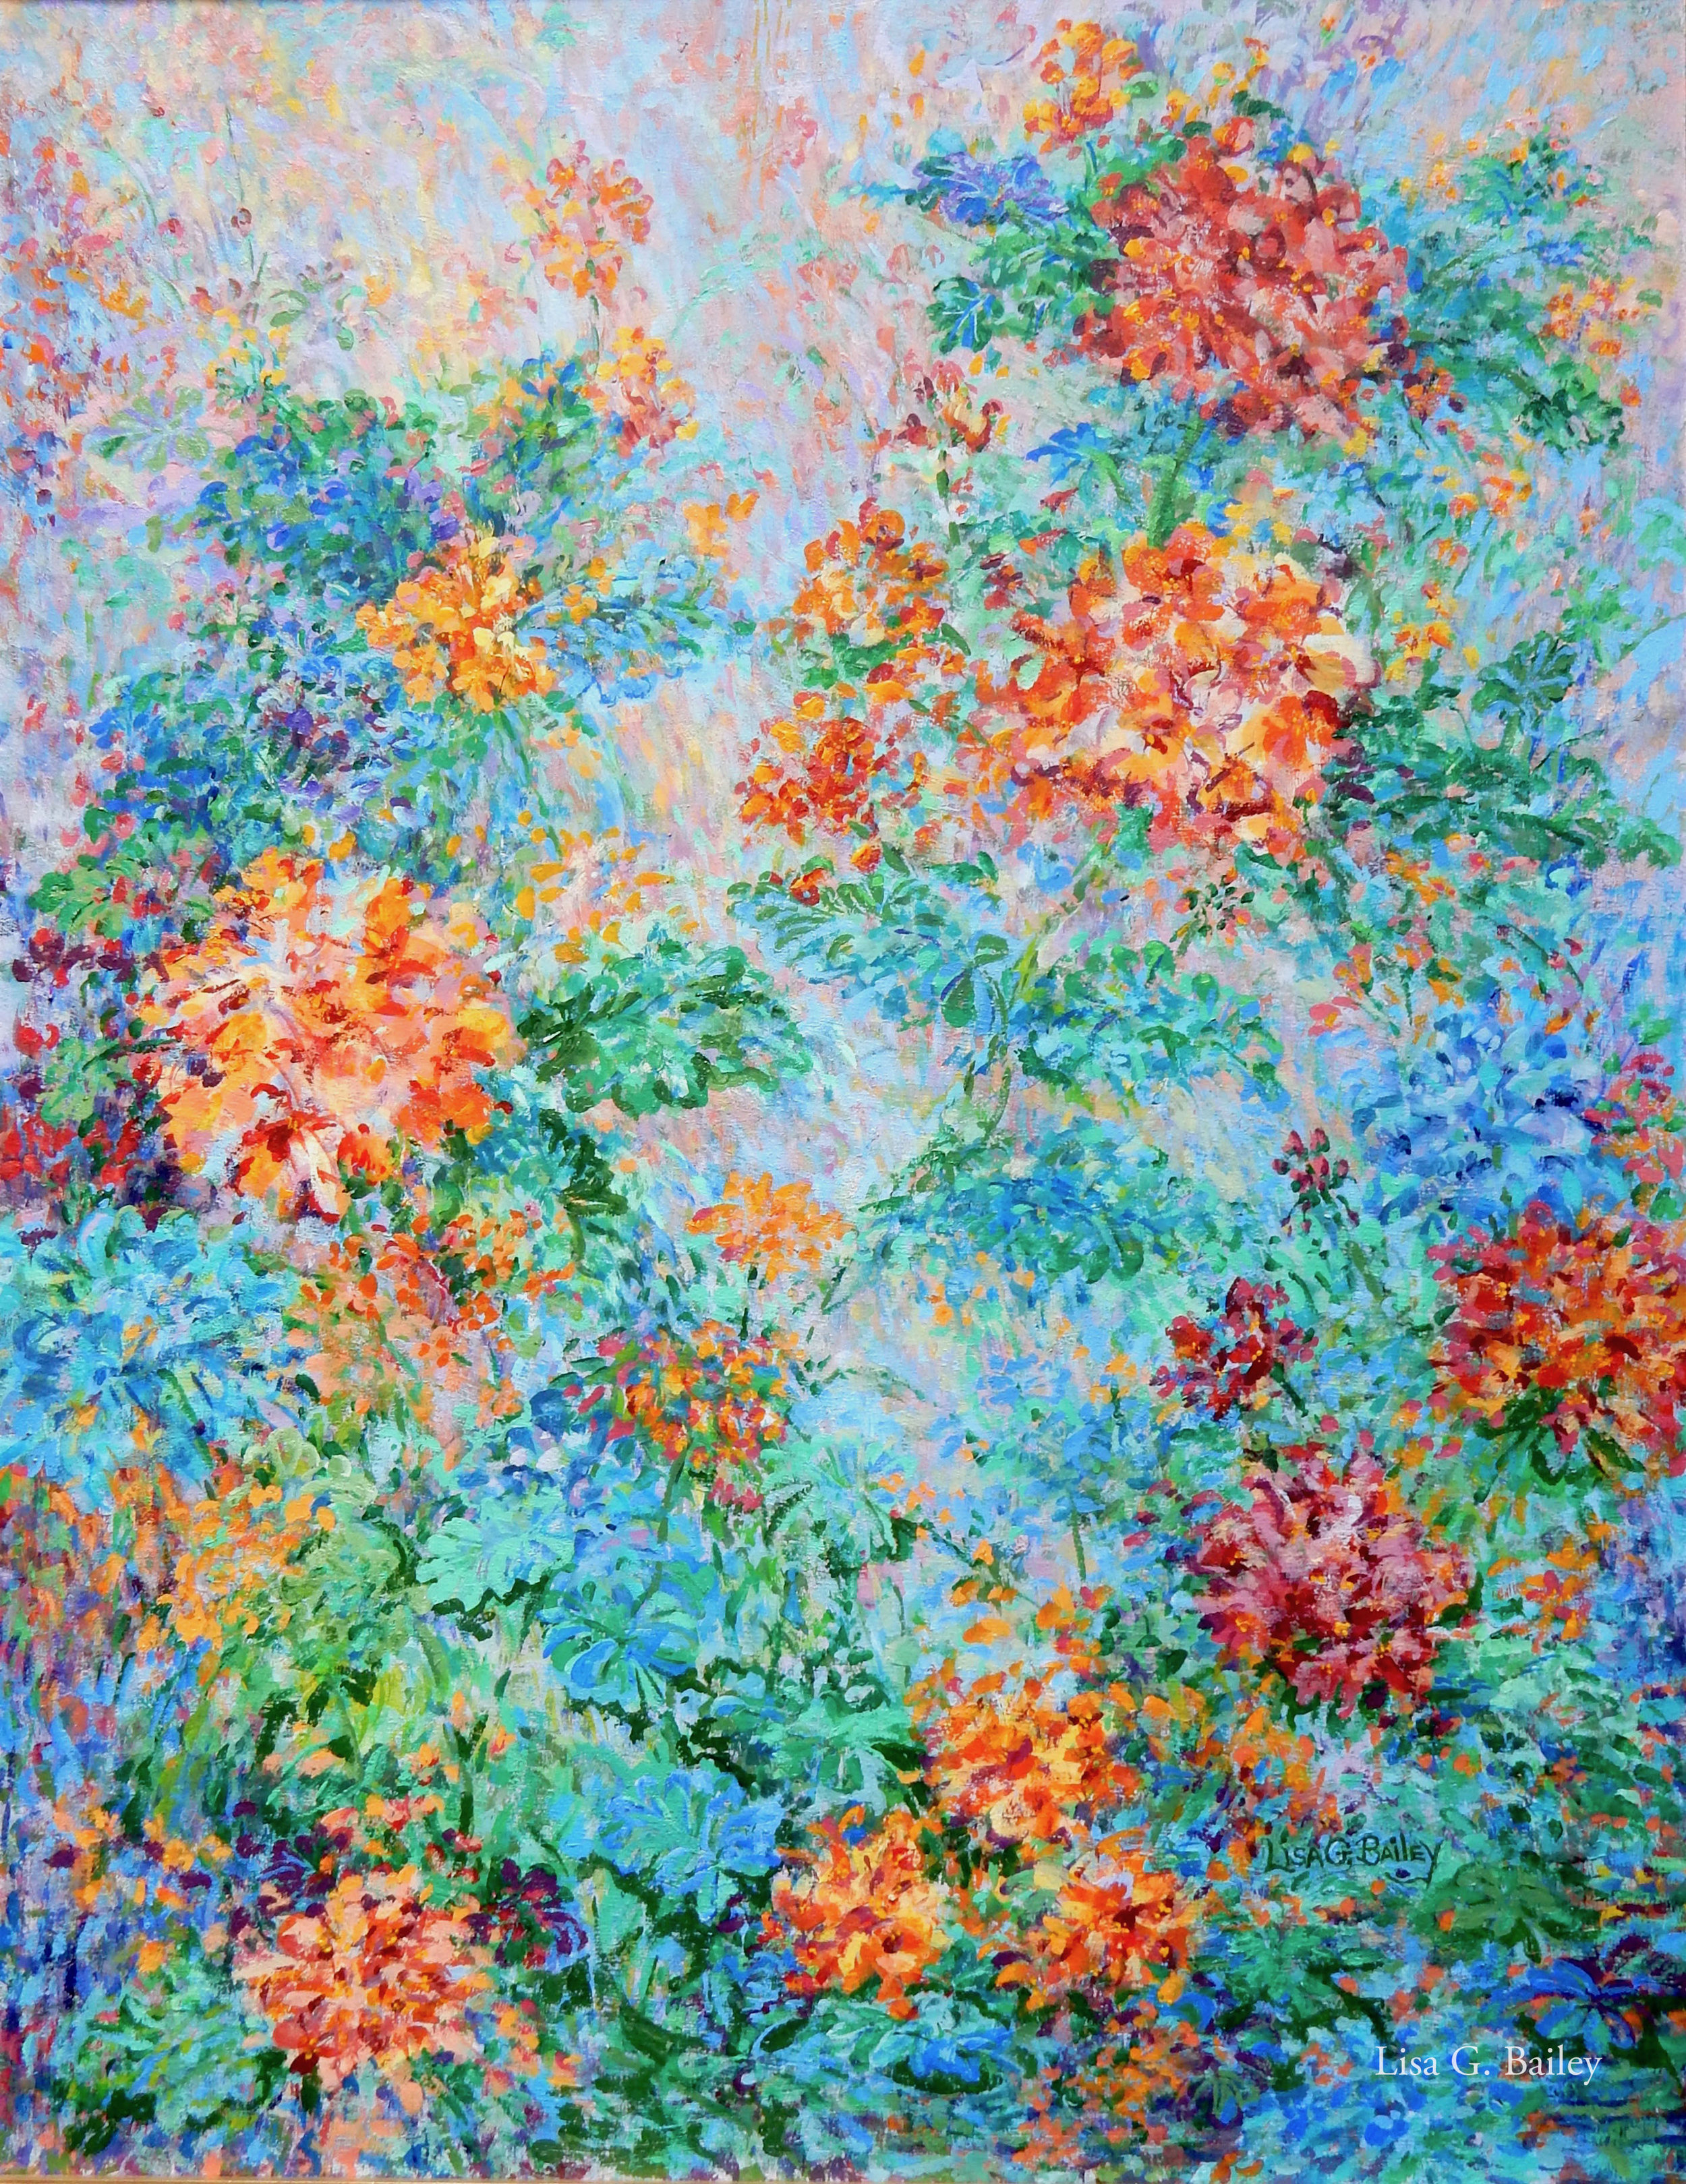 Lisa G Bailey.Efflorescence.acrylic